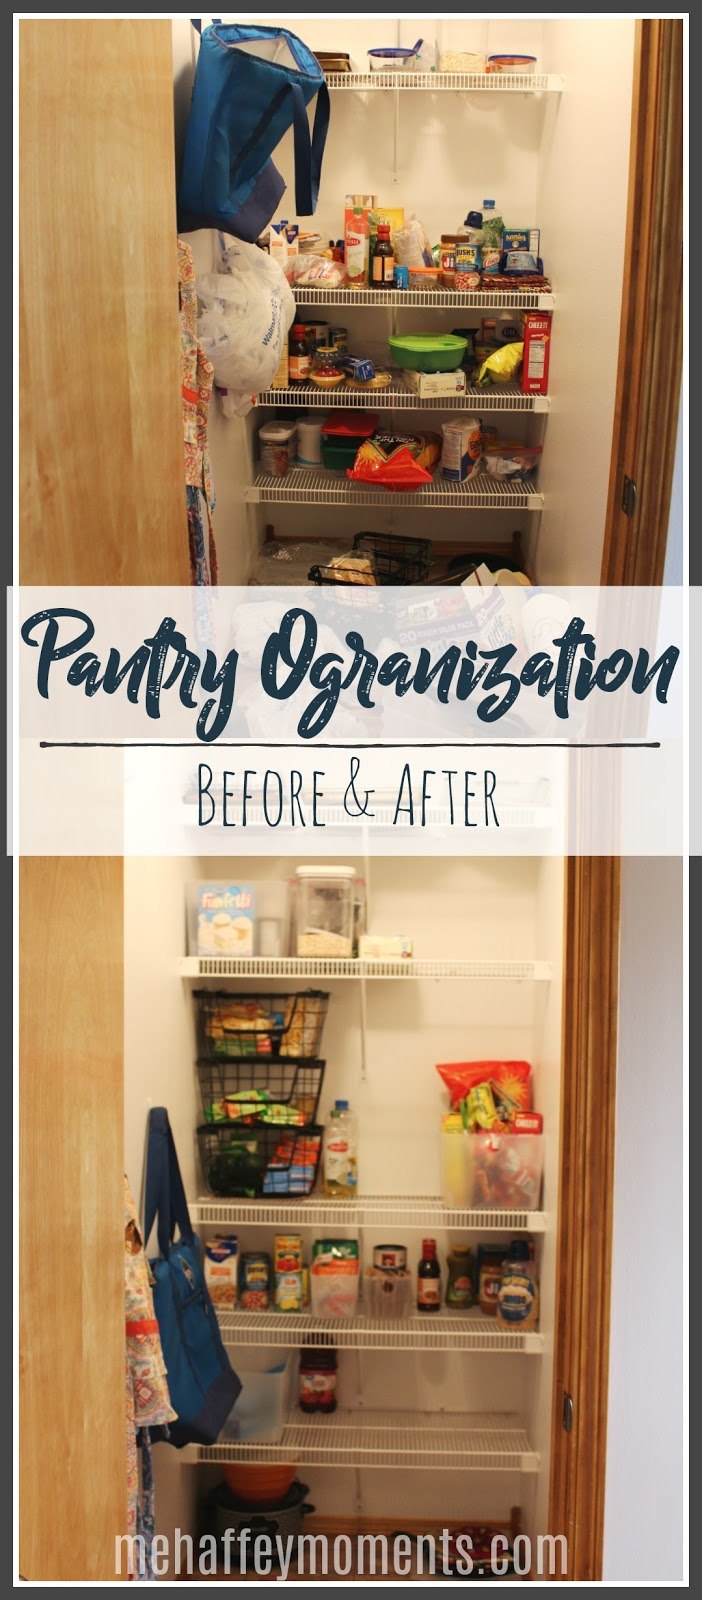 Pantry Organization, before and after Pinterest